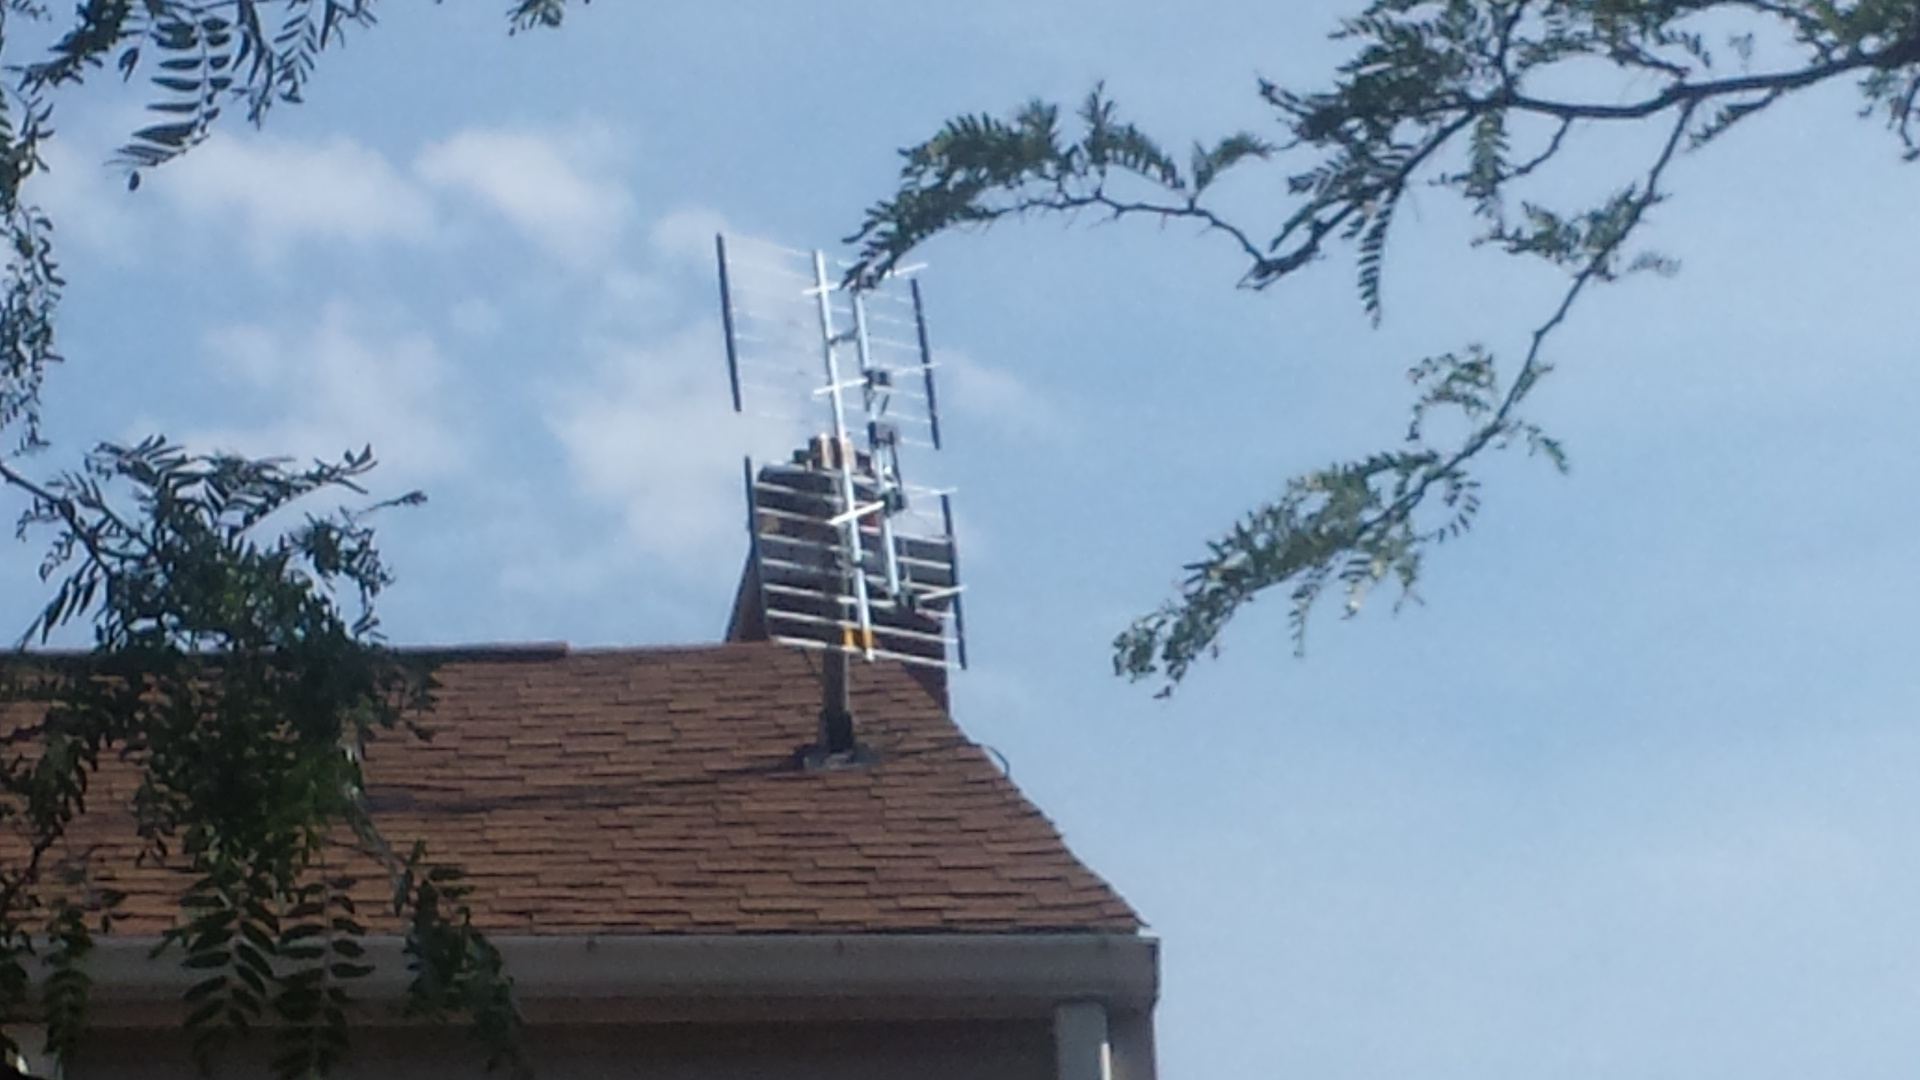 Hdtv Rooftop Antenna installation - Wnycable